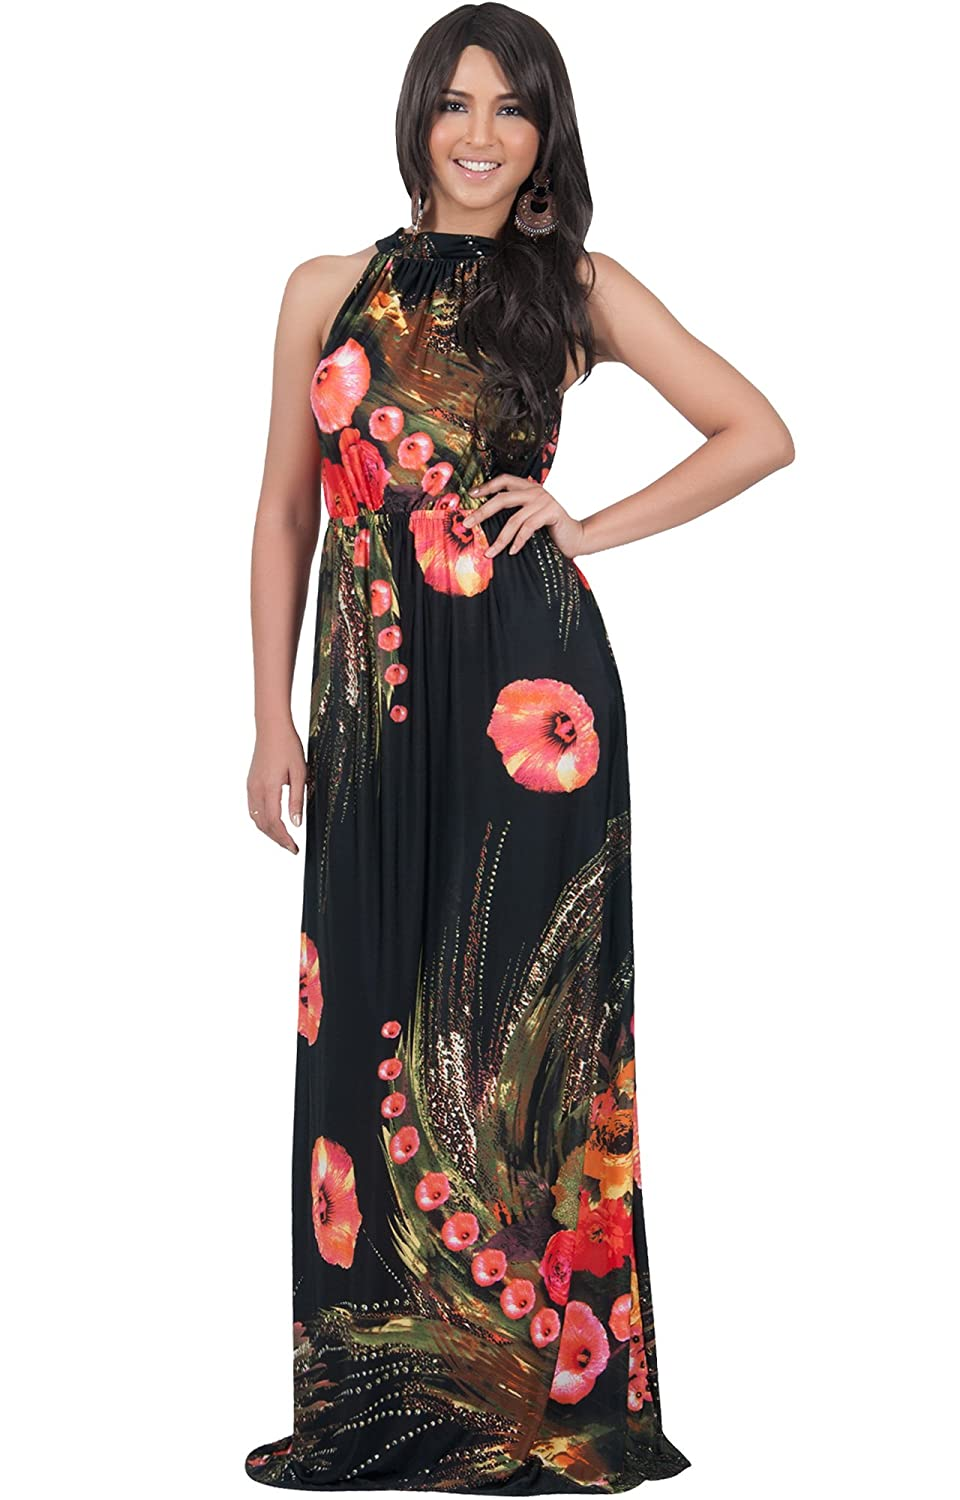 8ad9be8e880775 GARMENT CARE - Hand or machine washable. Can be dry-cleaned if desired. PLUS  SIZE - This great maxi dress design is also available in plus sizes